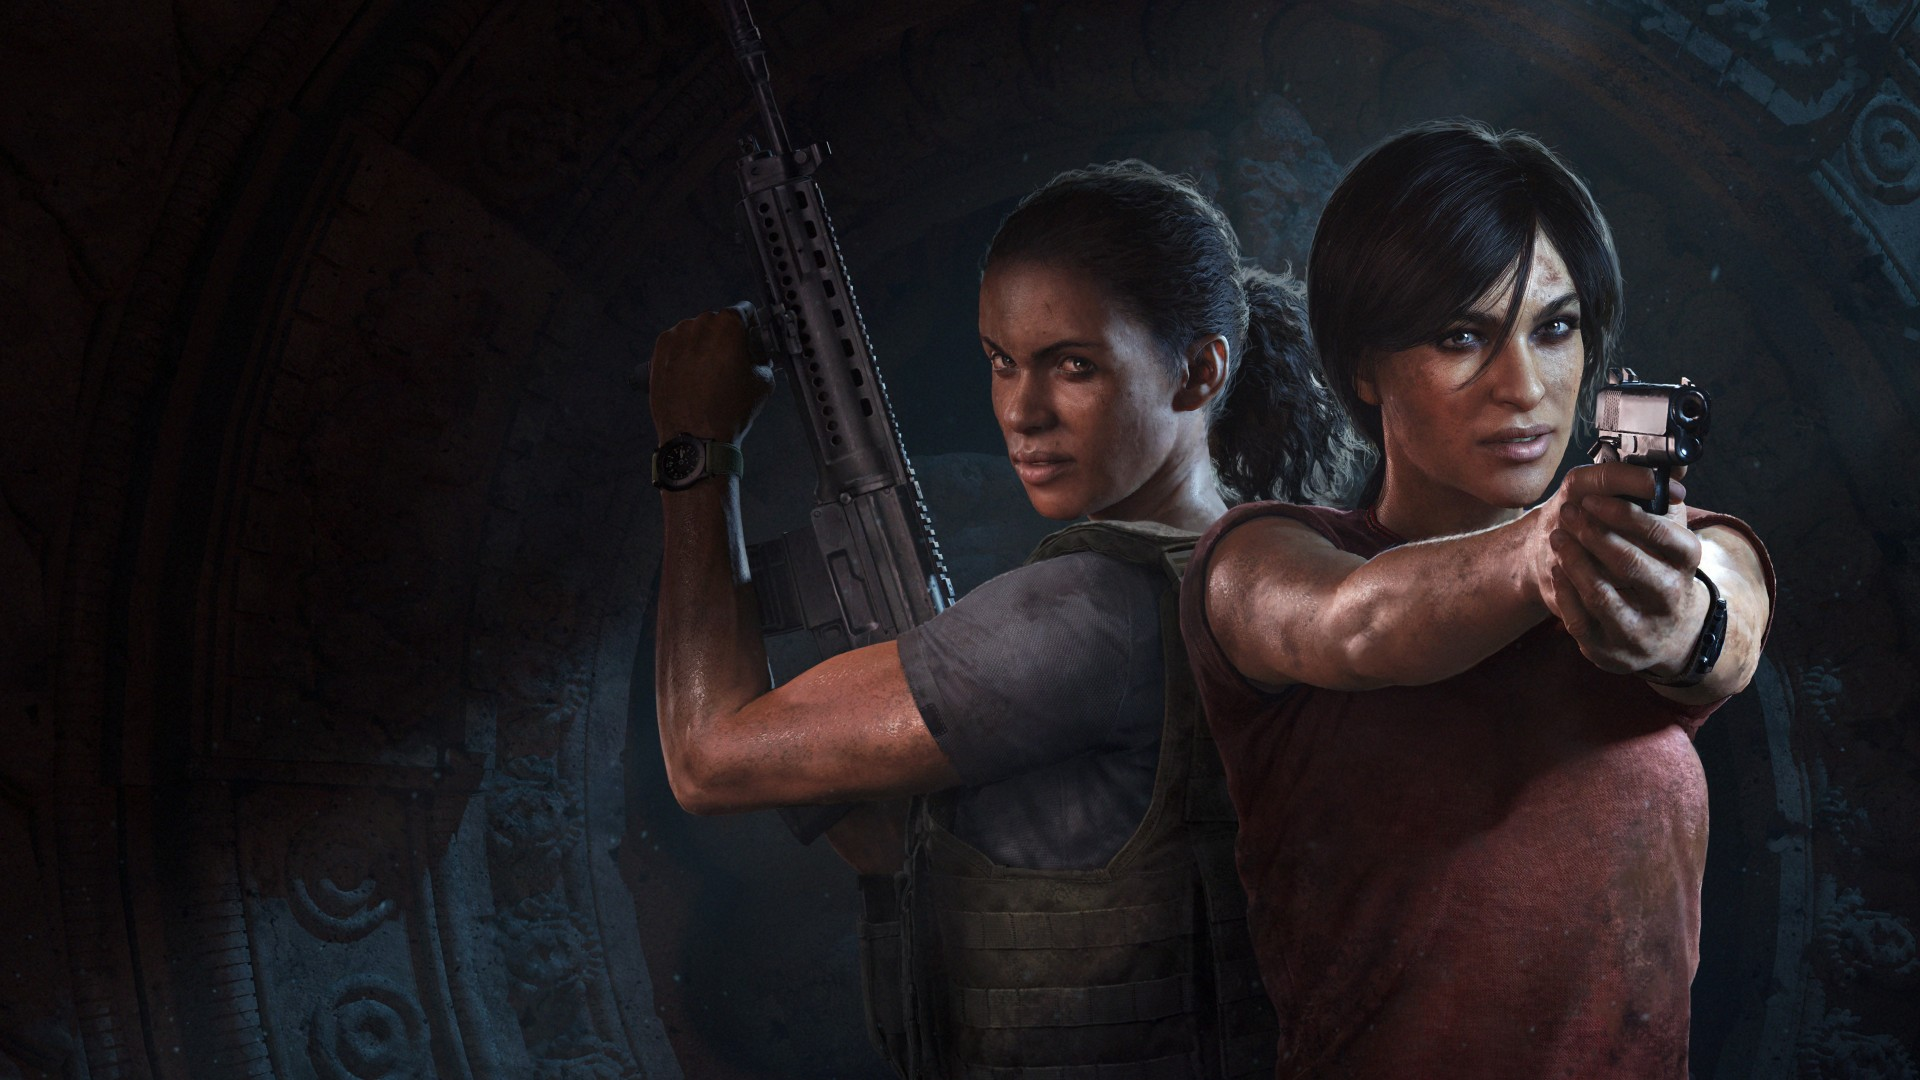 Uncharted: The Lost Legacy - Aug 22